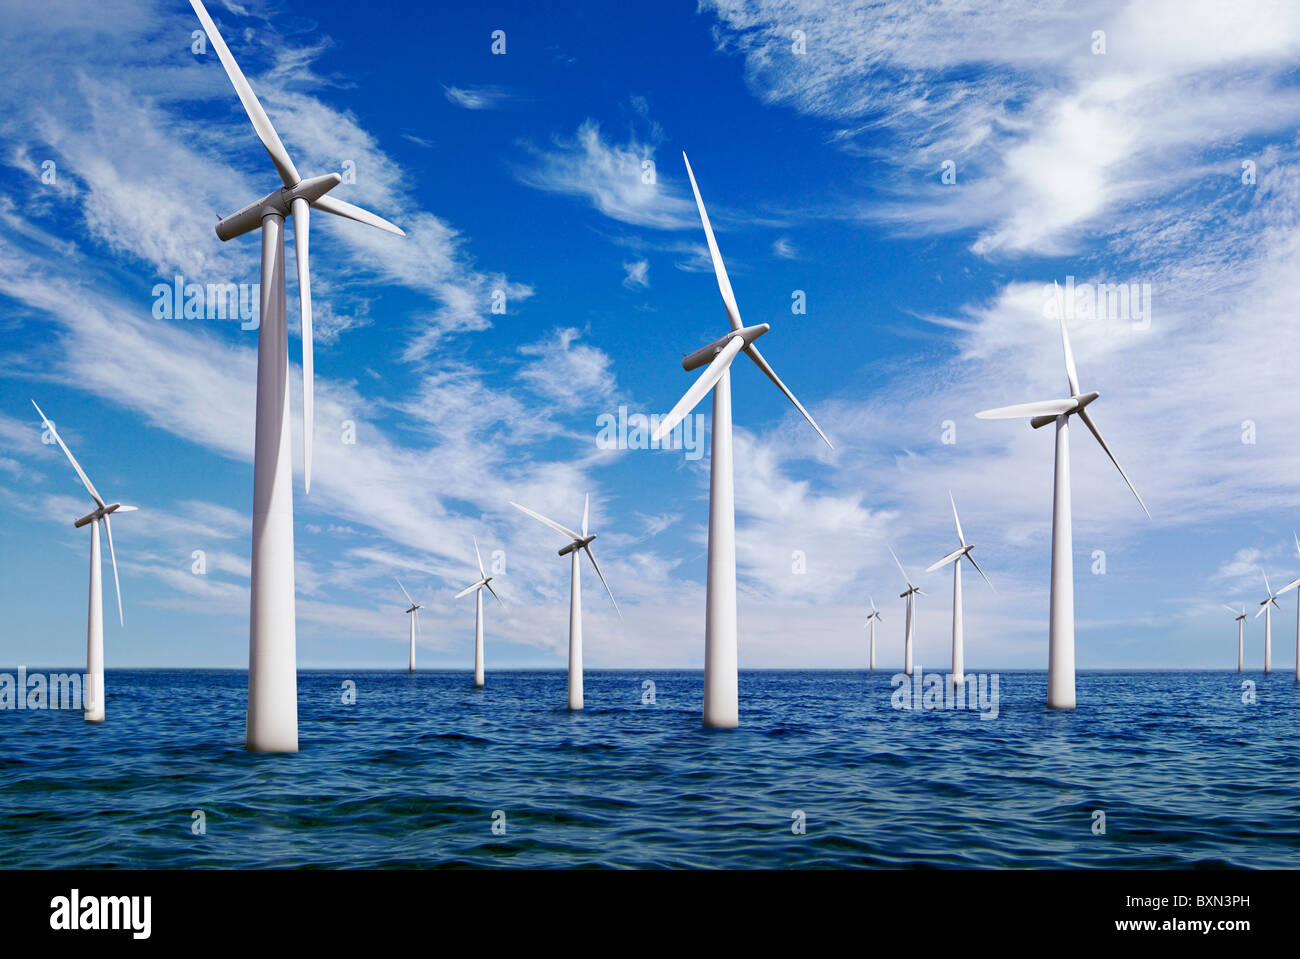 Offshore Wind Farm, UK. - Stock Image